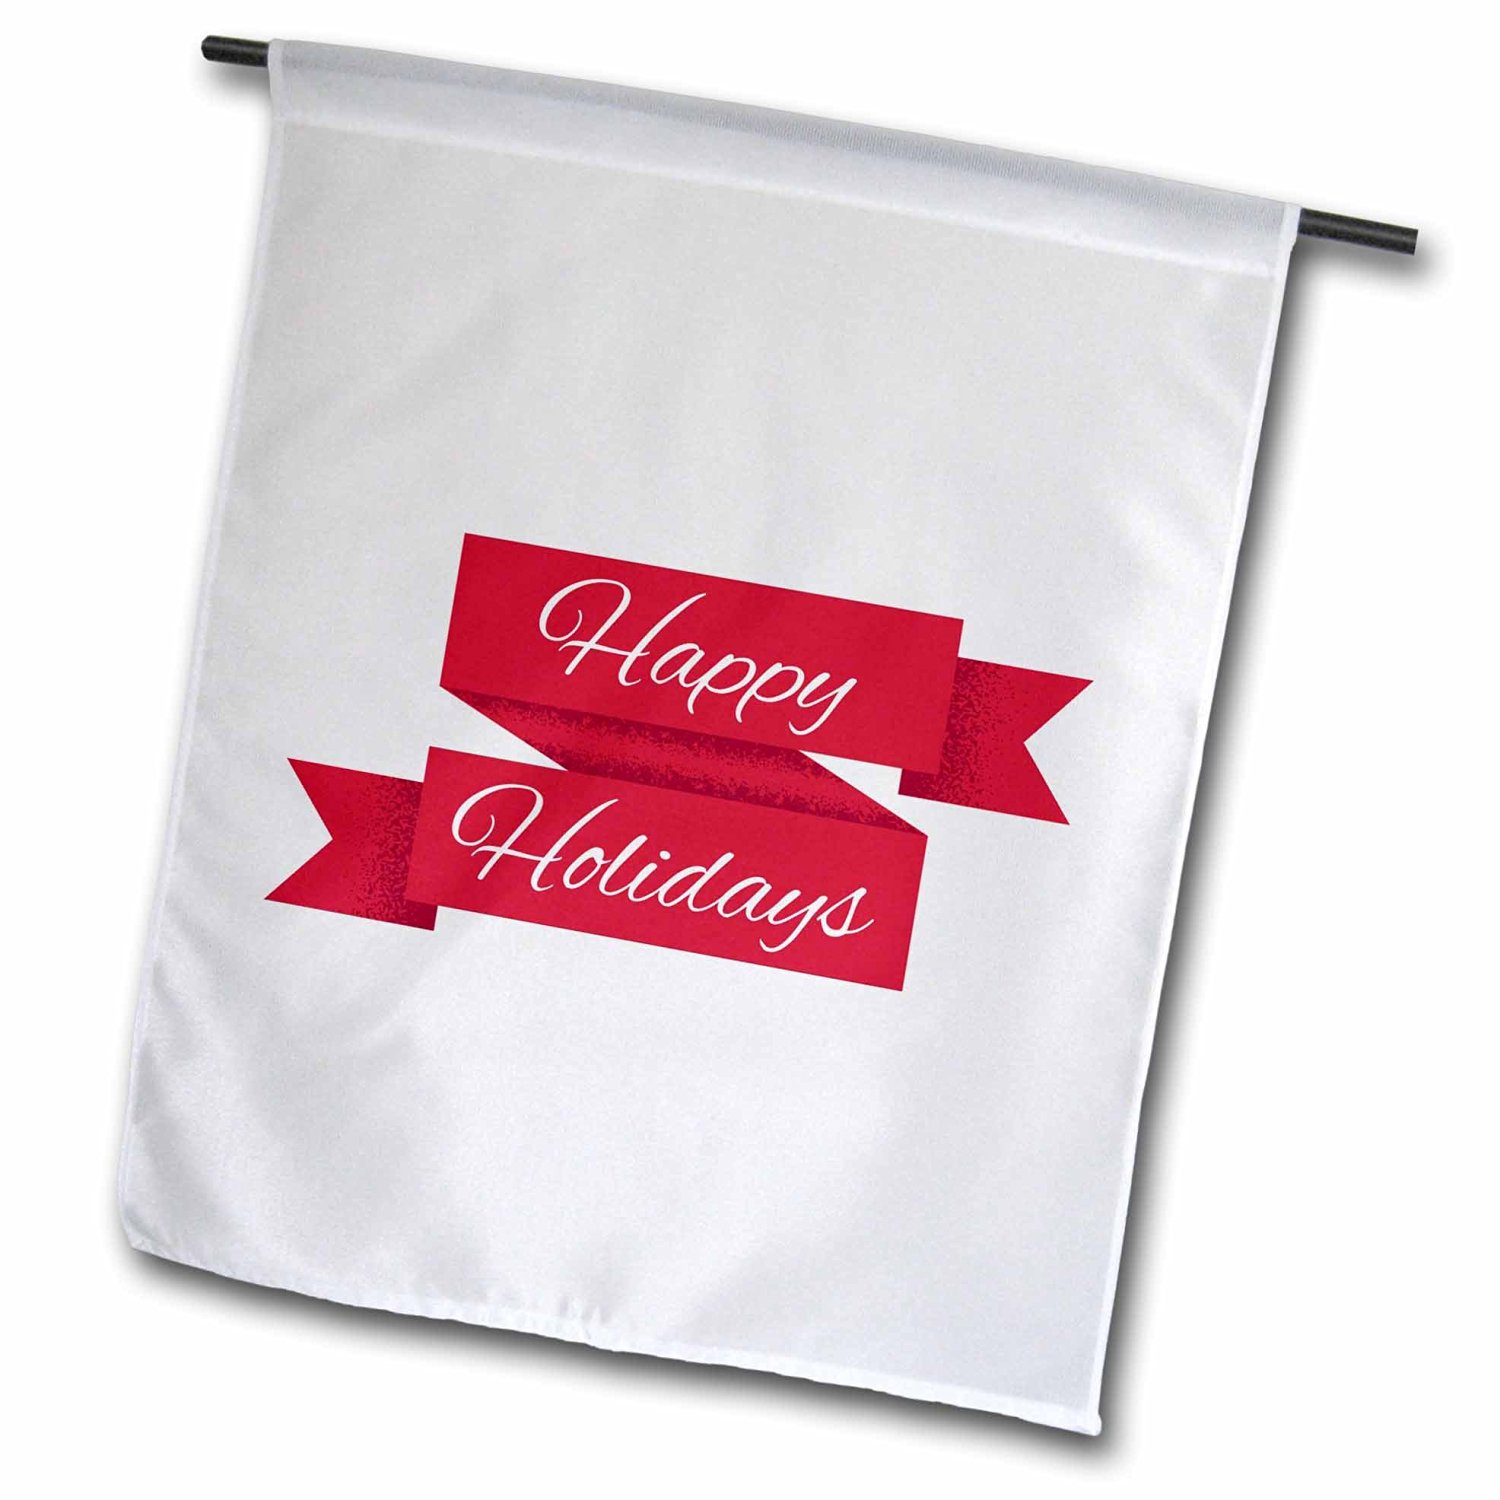 Xander holiday quotes - happy holidays white lettering on a red ribbon - 12 x 18 inch Garden Flag (fl_201856_1)